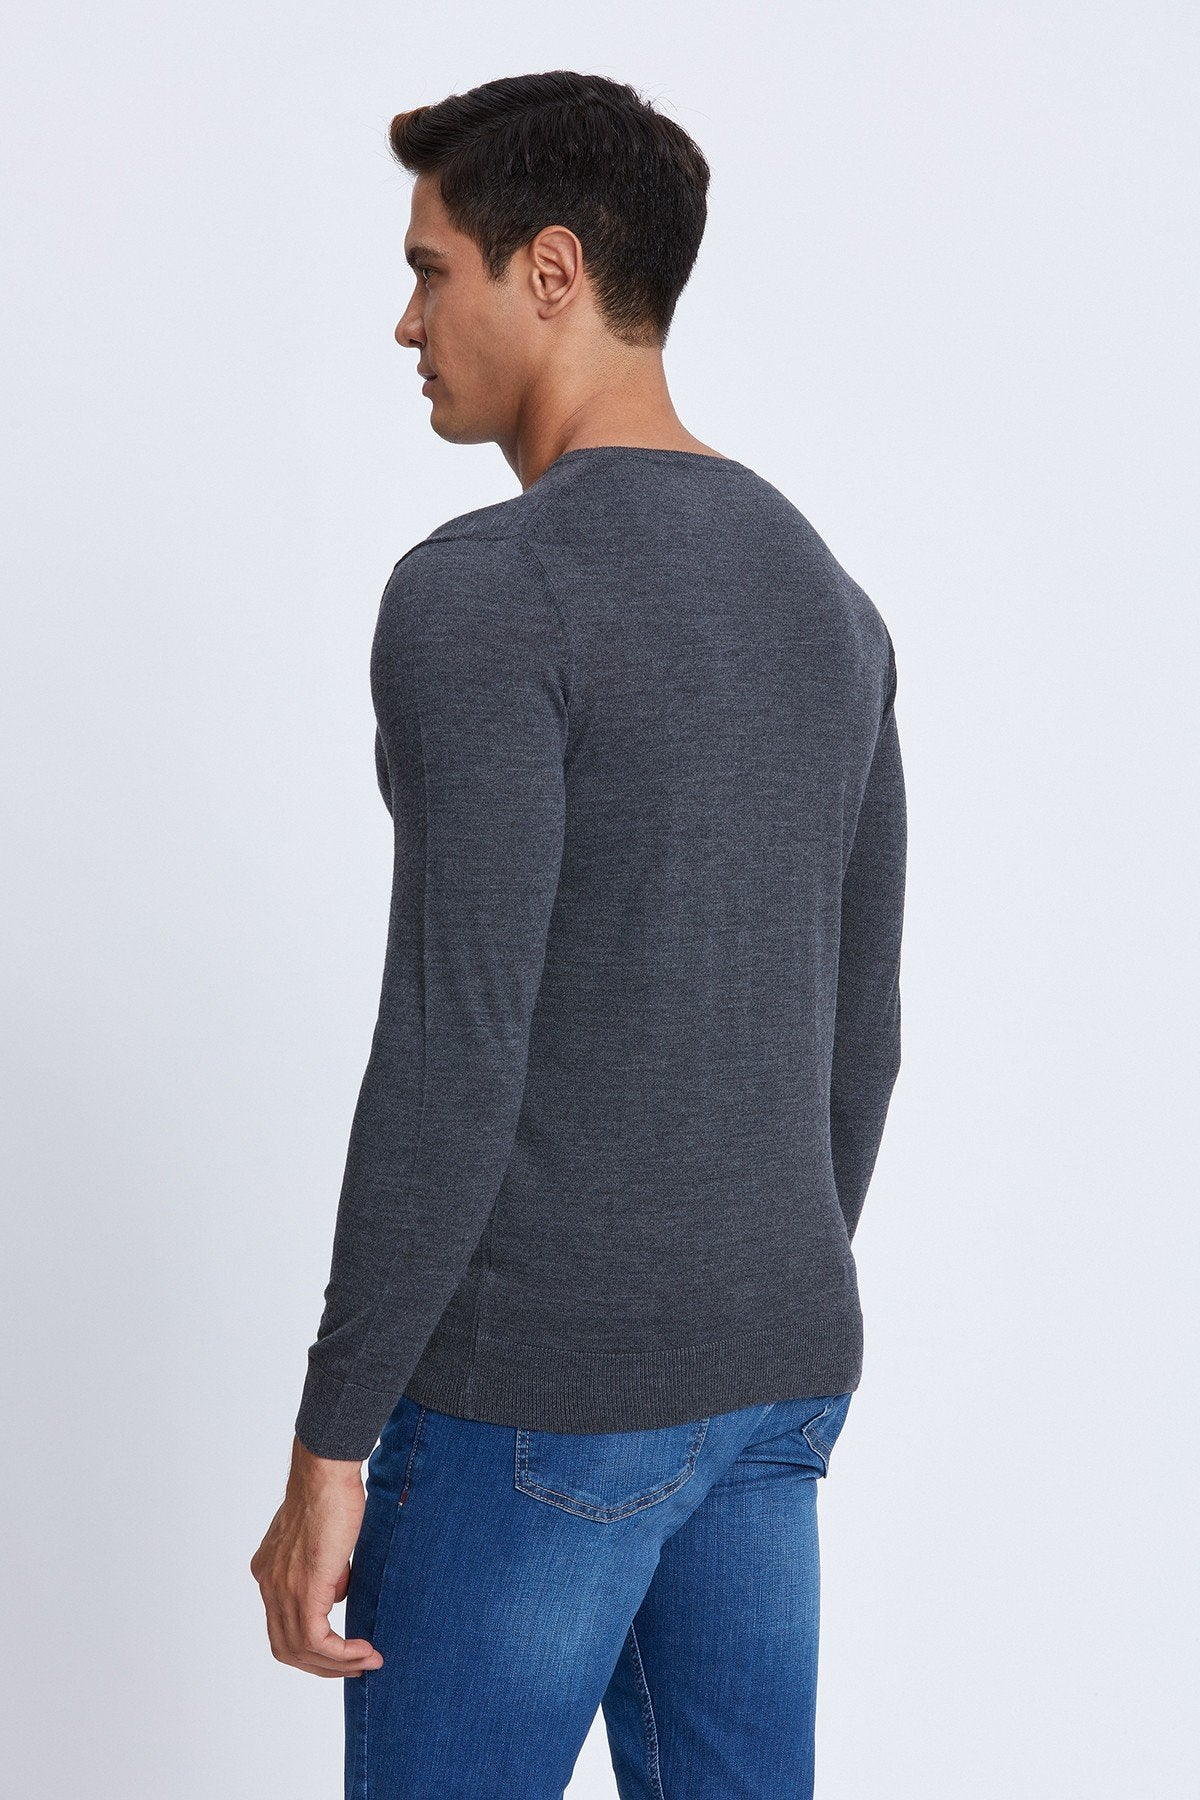 V-Neck Merino Sweater in Charcoal